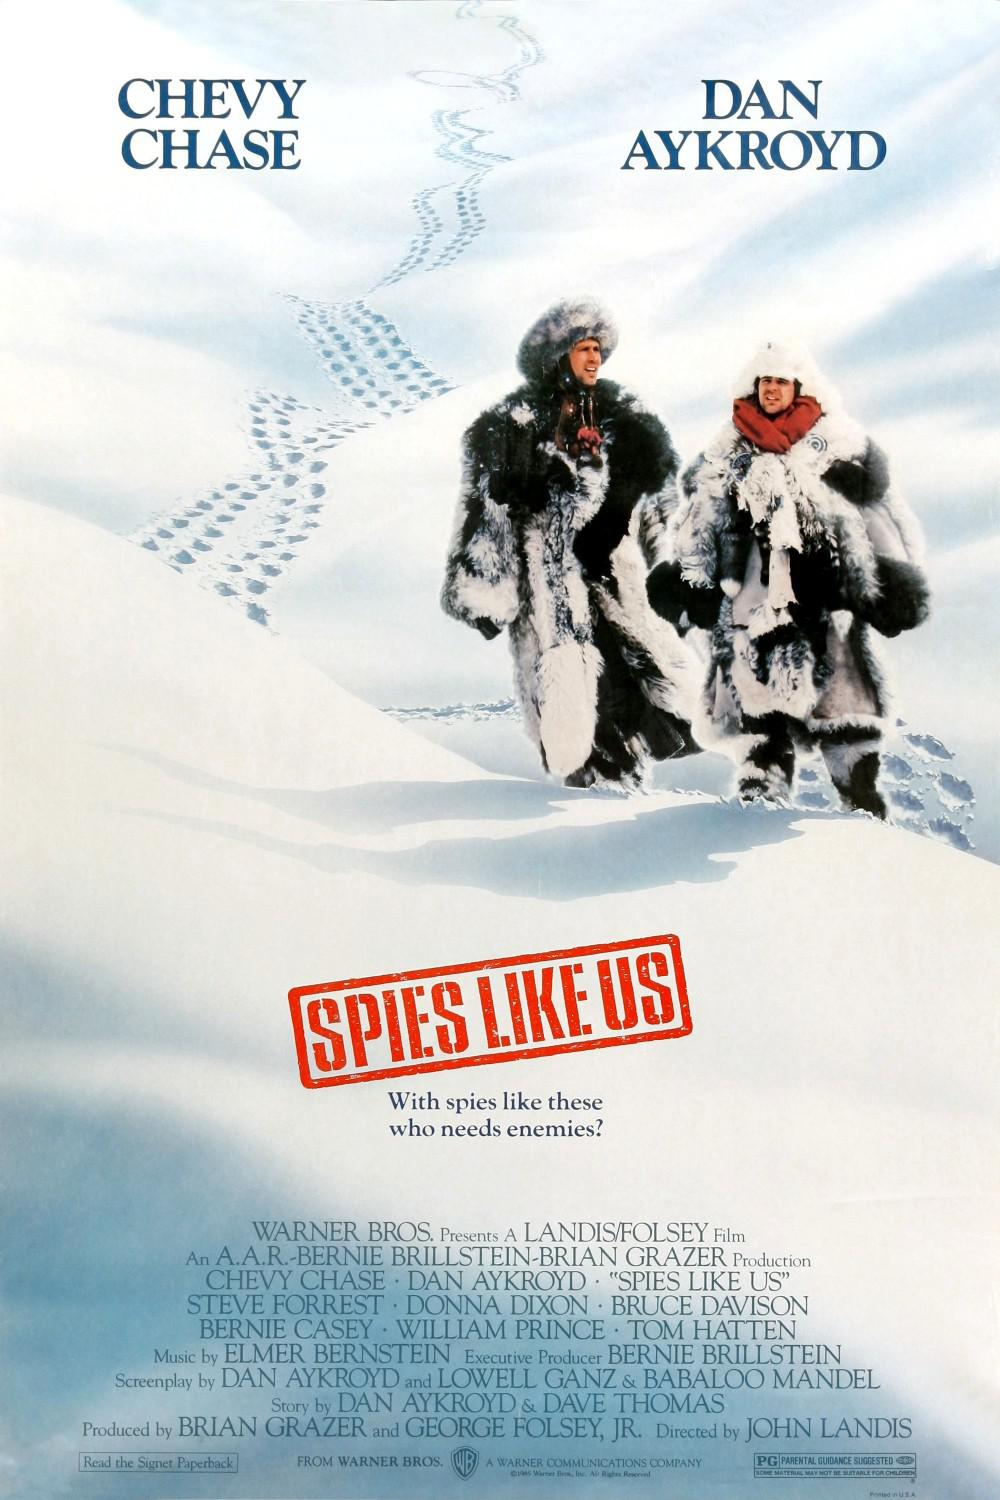 Spies like us - Spie come noi - film poster 80s - Chevy Chase - Dan Aykroyd - with spies like these, who needs enemies?